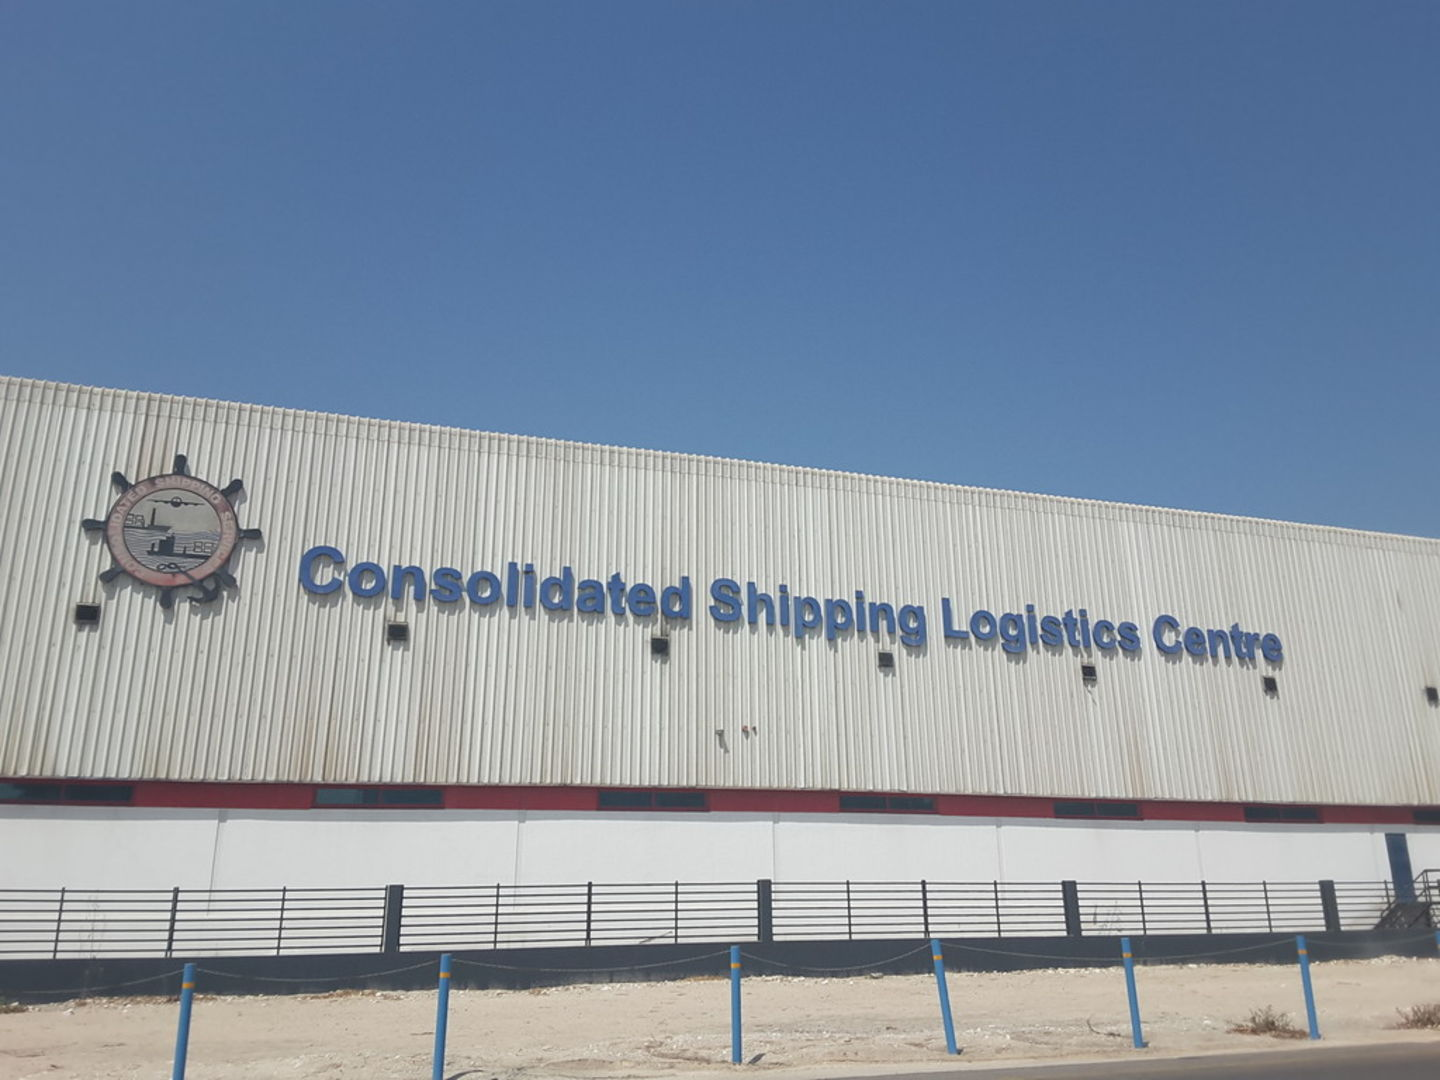 HiDubai-business-consolidated-shipping-services-logistics-centre-shipping-logistics-packaging-services-jebel-ali-free-zone-mena-jebel-ali-dubai-2